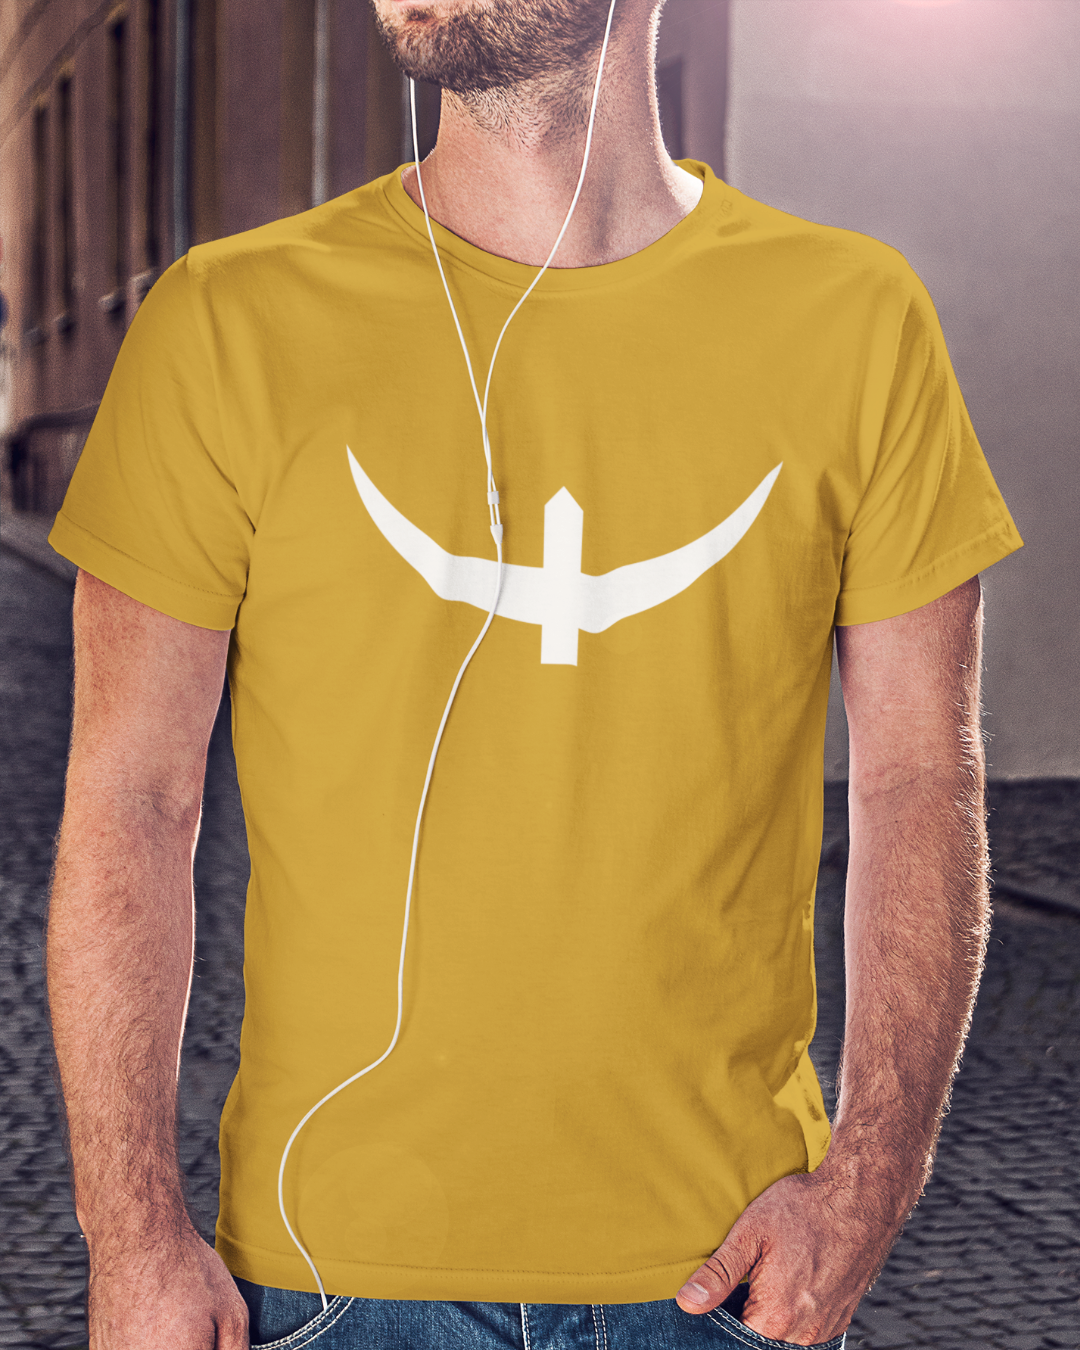 t-shirt-mockup-of-a-man-listening-to-music-on-the-street-4802-el1